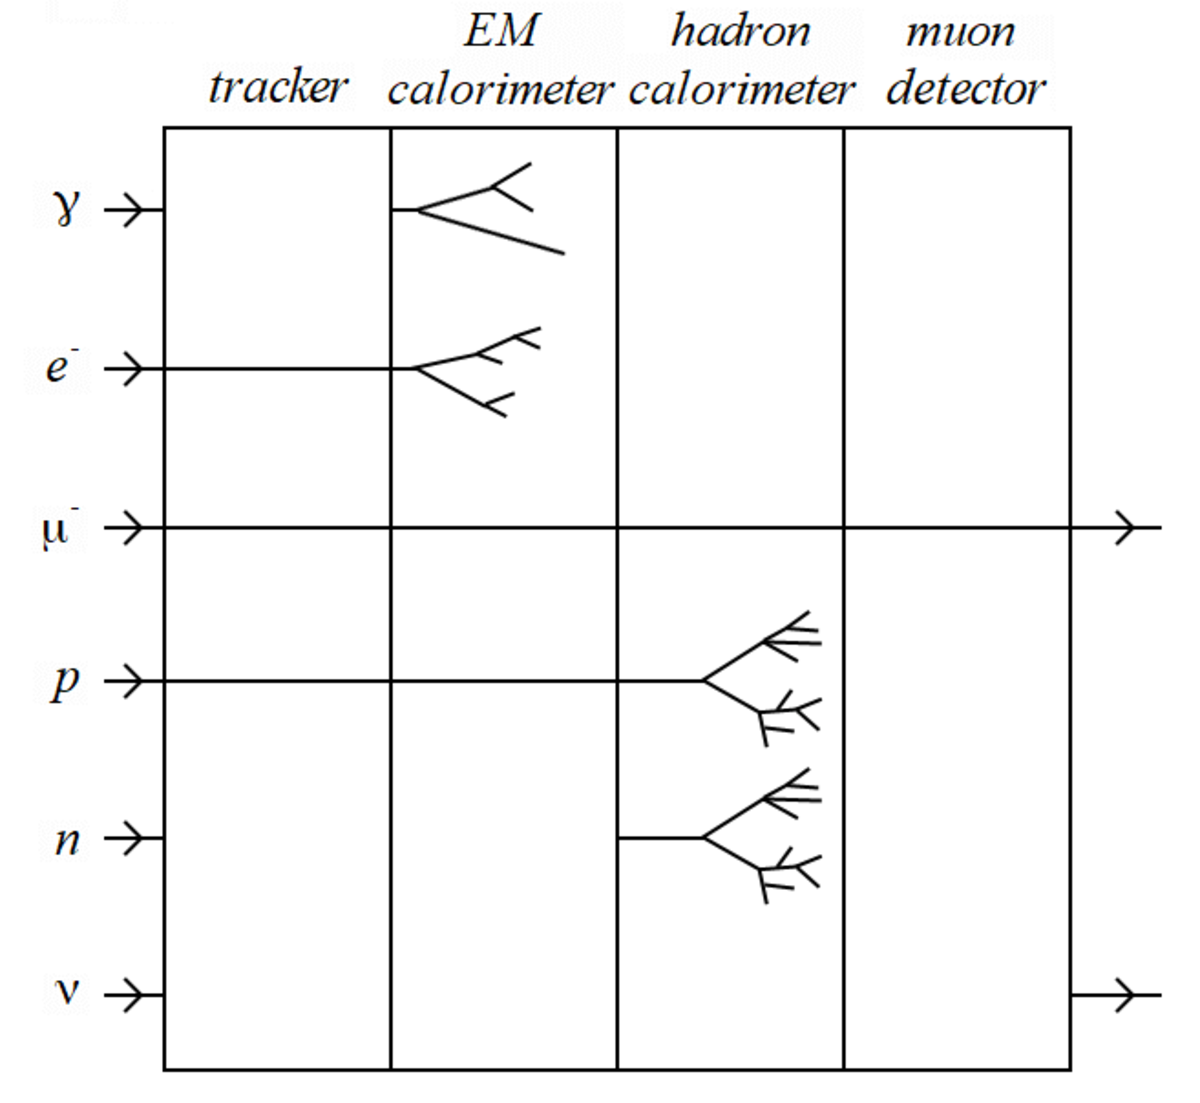 A schematic showing the layers of a typical modern particle detector and examples of how it detects common particles.